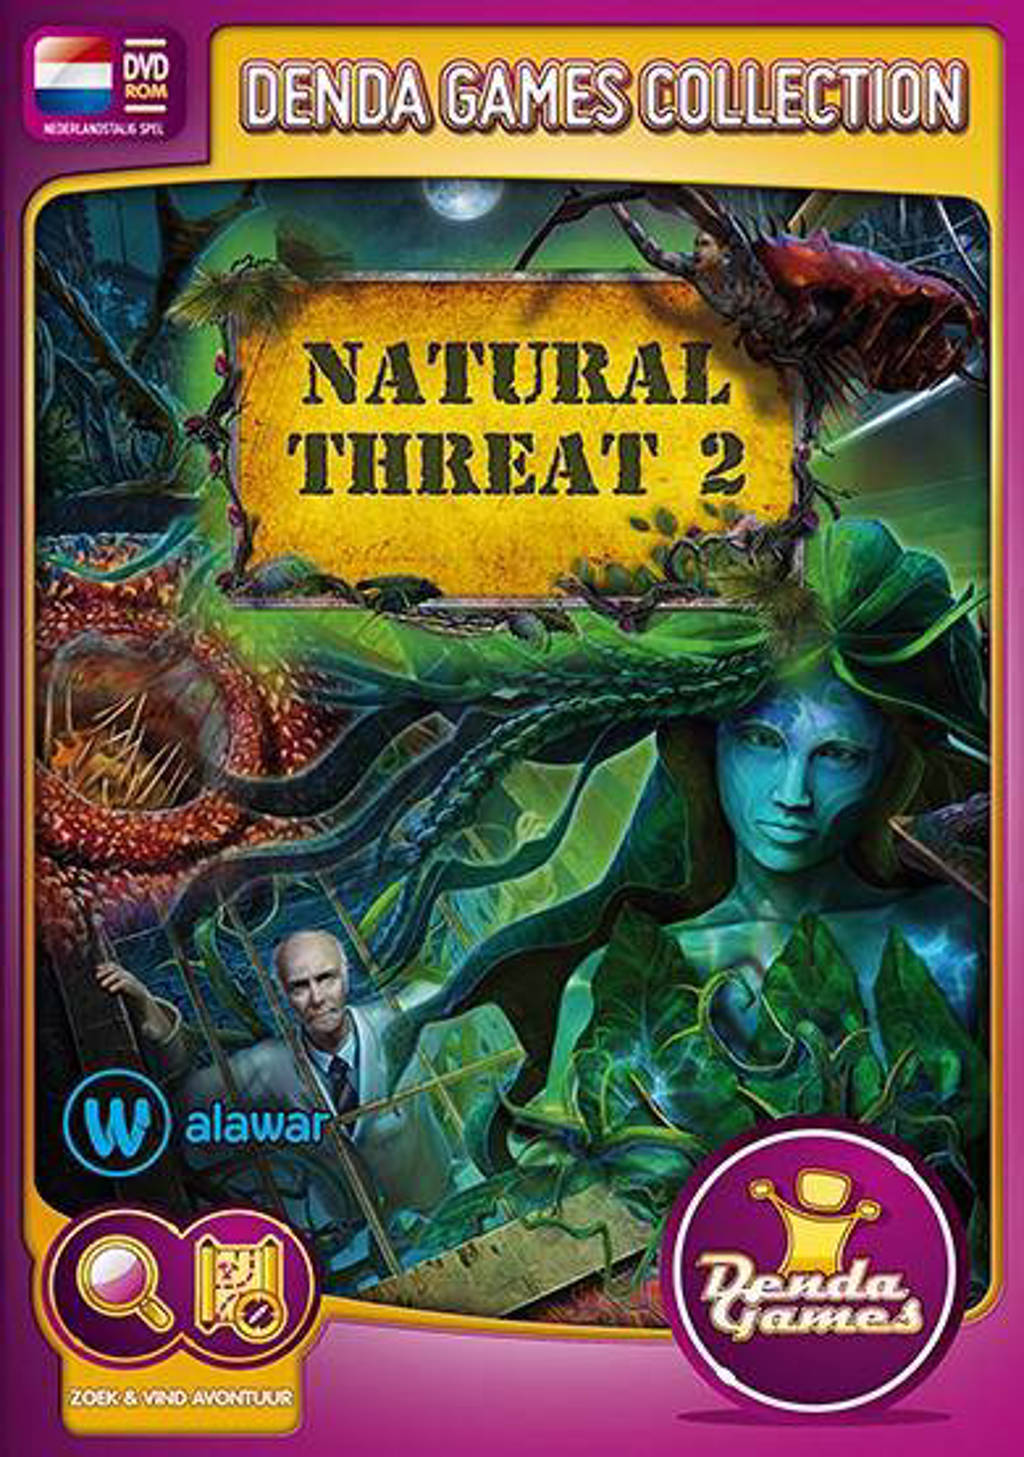 Natural threat 2 (PC)